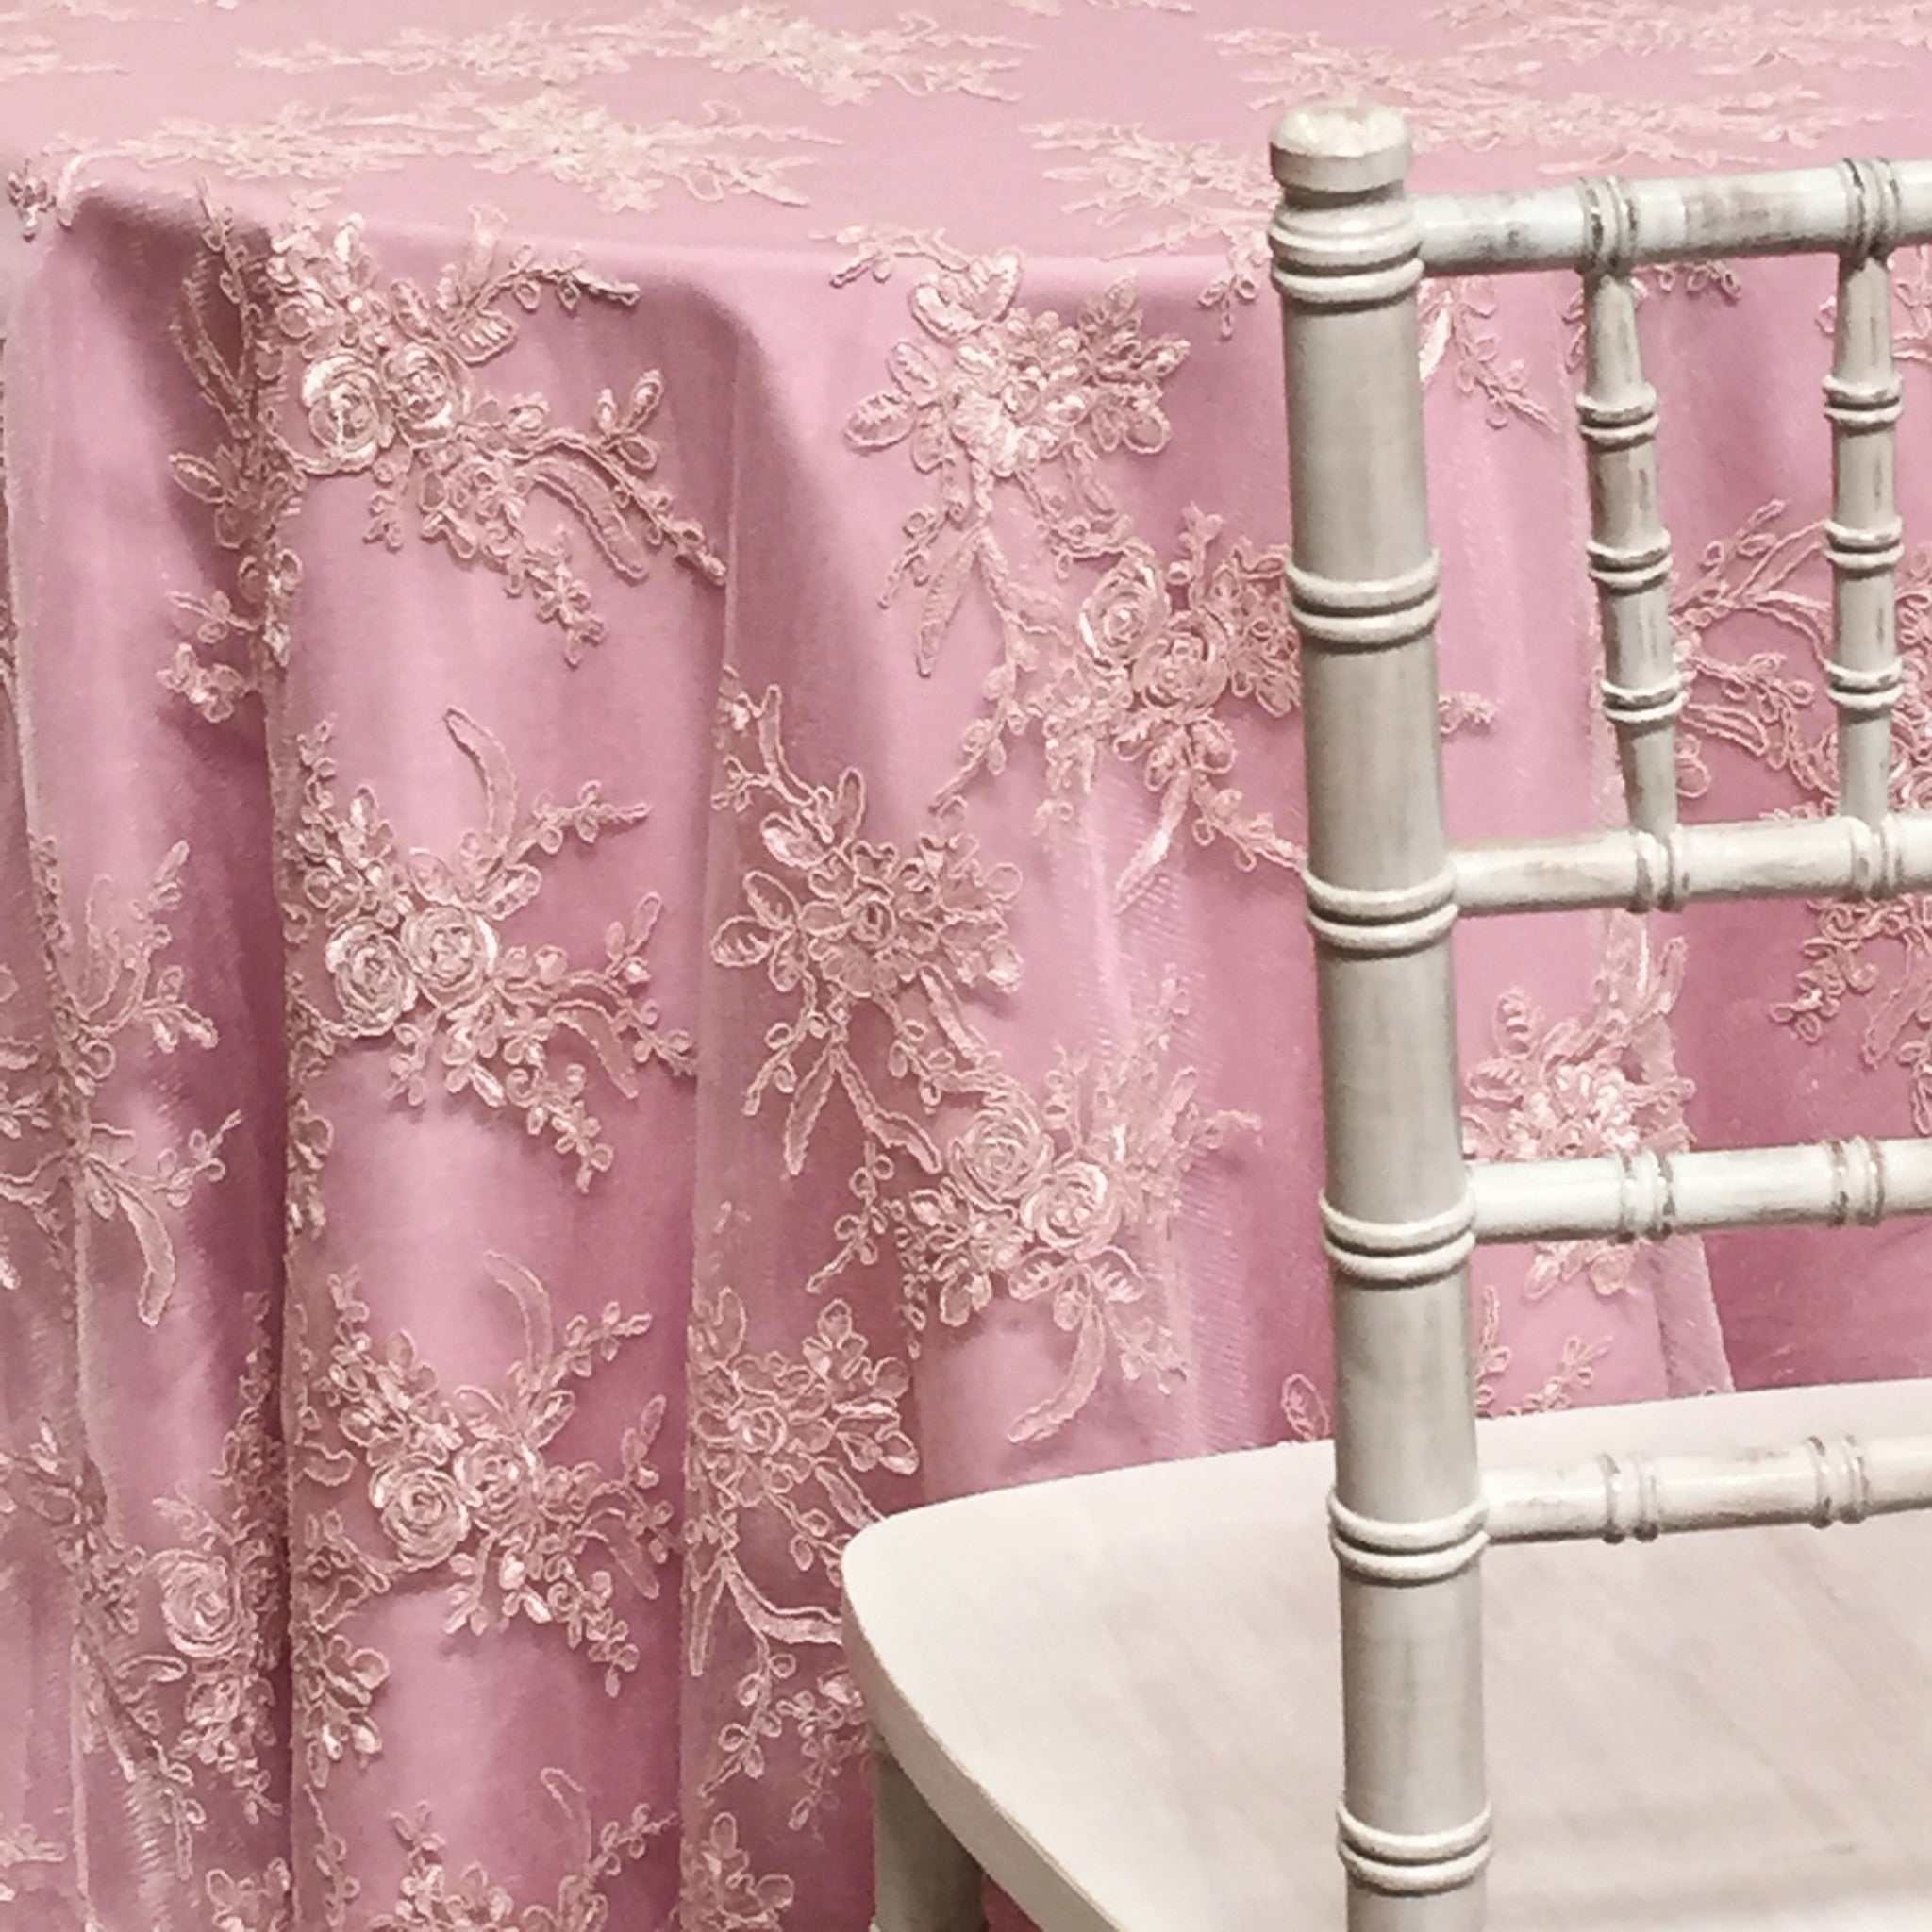 Laylani Lace Dusty Rose 120 Quot Round Wedding Tablecloth